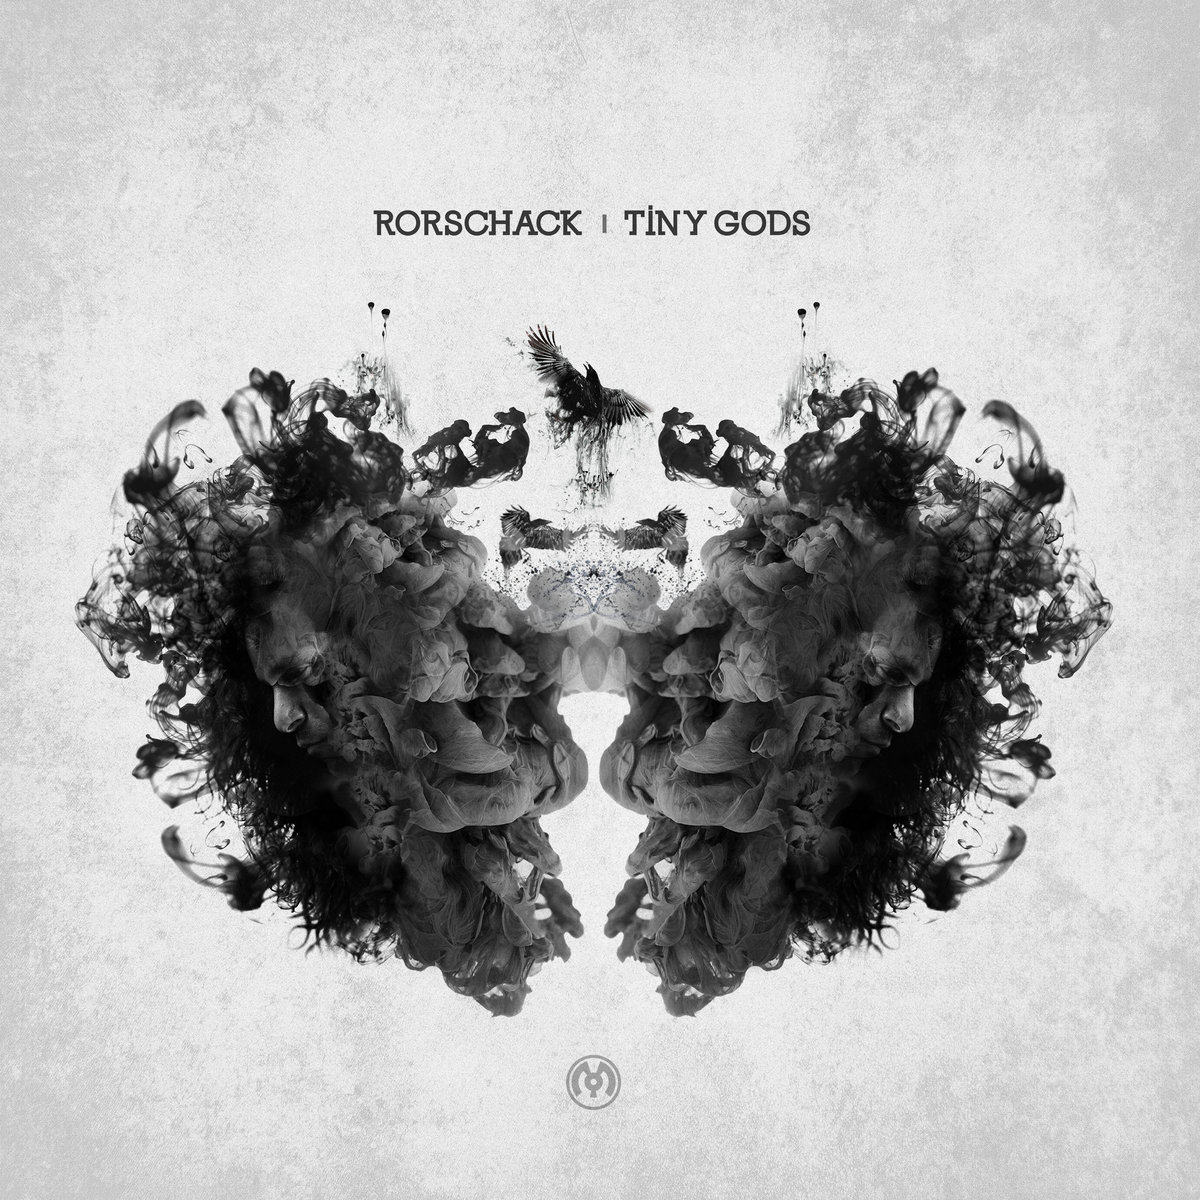 ANML - Easy Love (Rorschack Remix) @ 'Tiny Gods' album (electronic, dubstep)